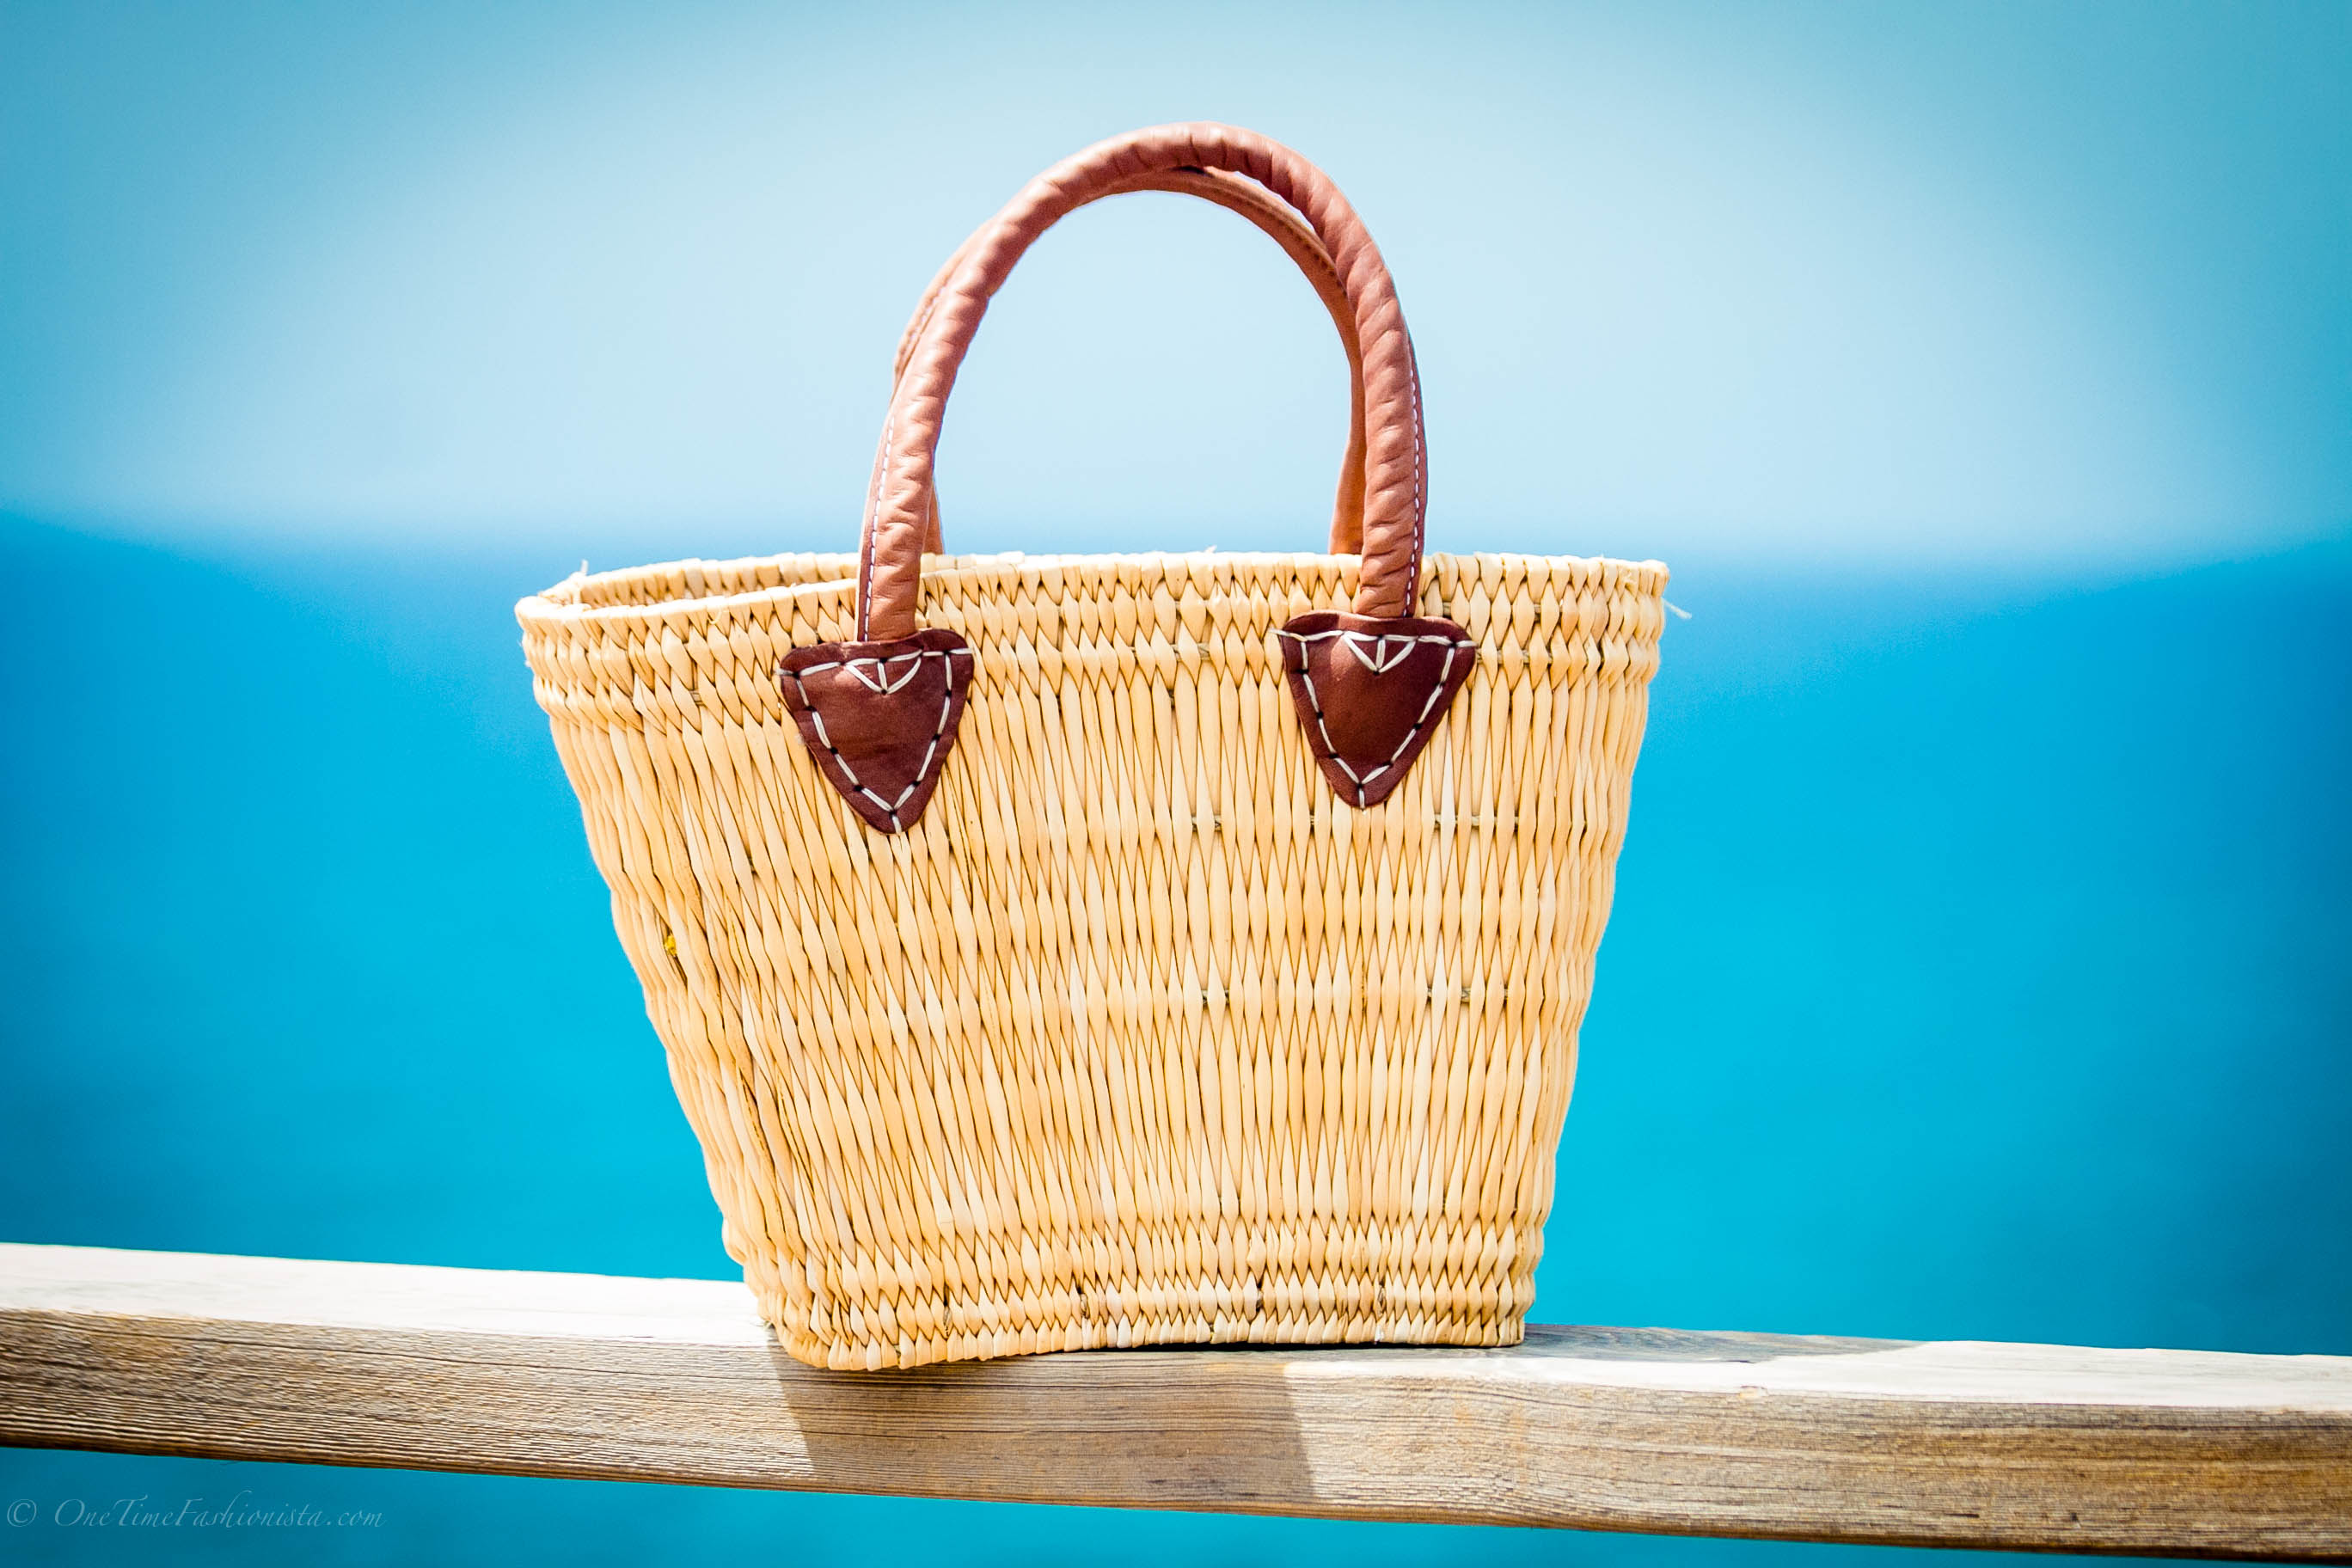 Shopping in Portugal: Brag about the Straw Basket BagghoshtanusreeShopping in Portugal: Brag about the Straw Basket BagShopping in Portugal: Brag about the Straw Basket BagShopping in Portugal: Brag about the Straw Basket BagShopping in Portugal: Brag about the Straw Basket BagShopping in Portugal: Brag about the Straw Basket BagShopping in Portugal: Brag about the Straw Basket BagShopping in Portugal: Brag about the Straw Basket BagShopping in Portugal: Brag about the Straw Basket BagShopping in Portugal: Brag about the Straw Basket Bag